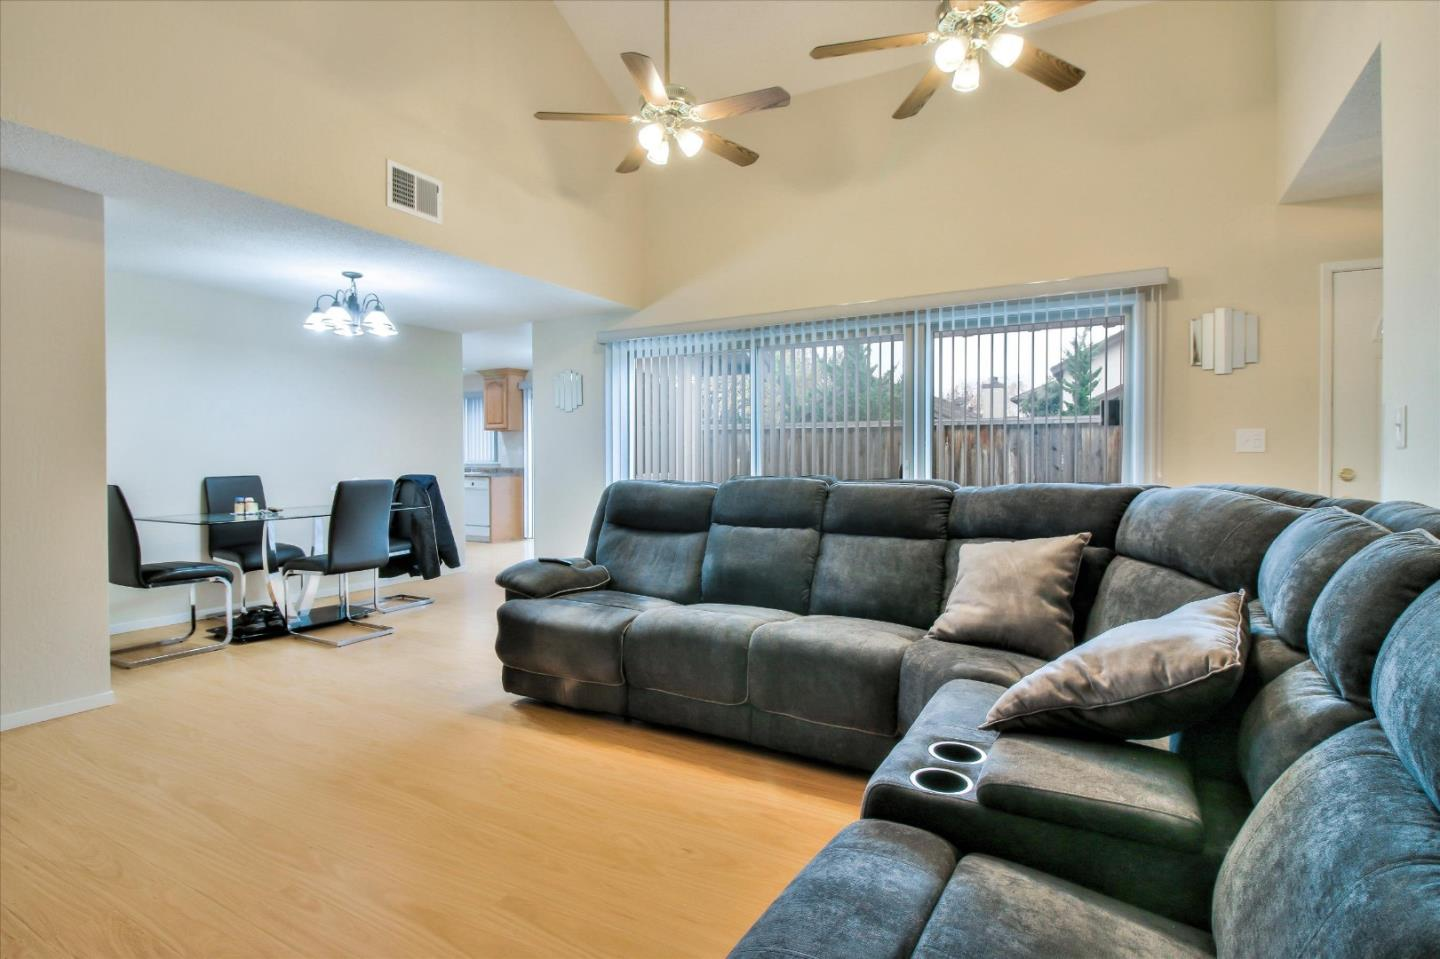 807 Clearview Dr, San Jose, CA 95133